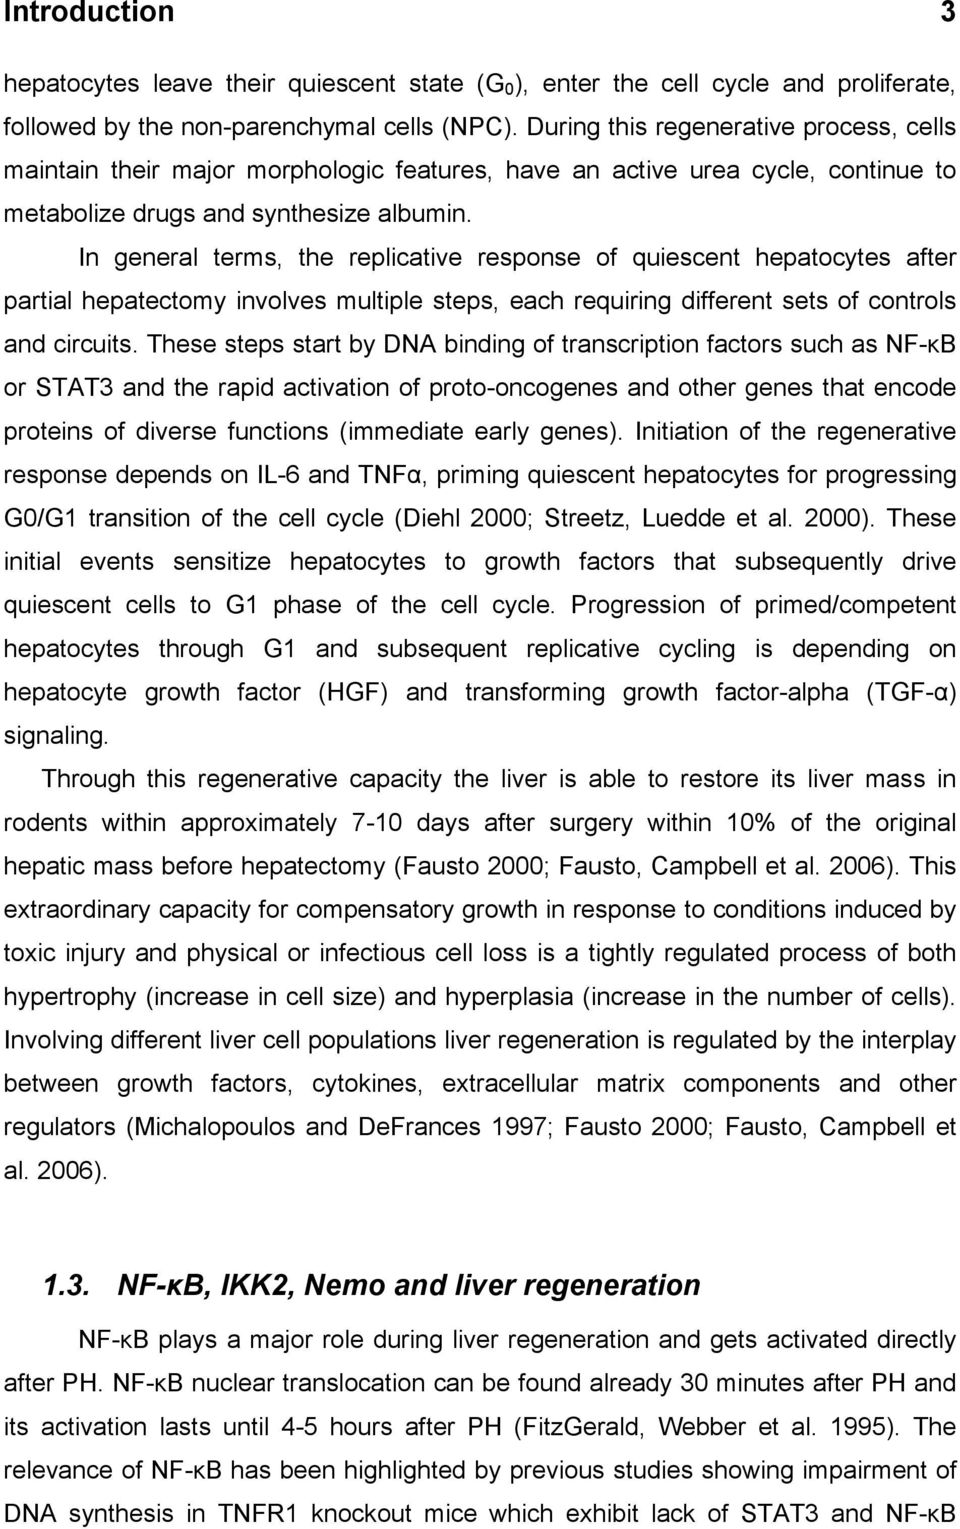 In general terms, the replicative response of quiescent hepatocytes after partial hepatectomy involves multiple steps, each requiring different sets of controls and circuits.